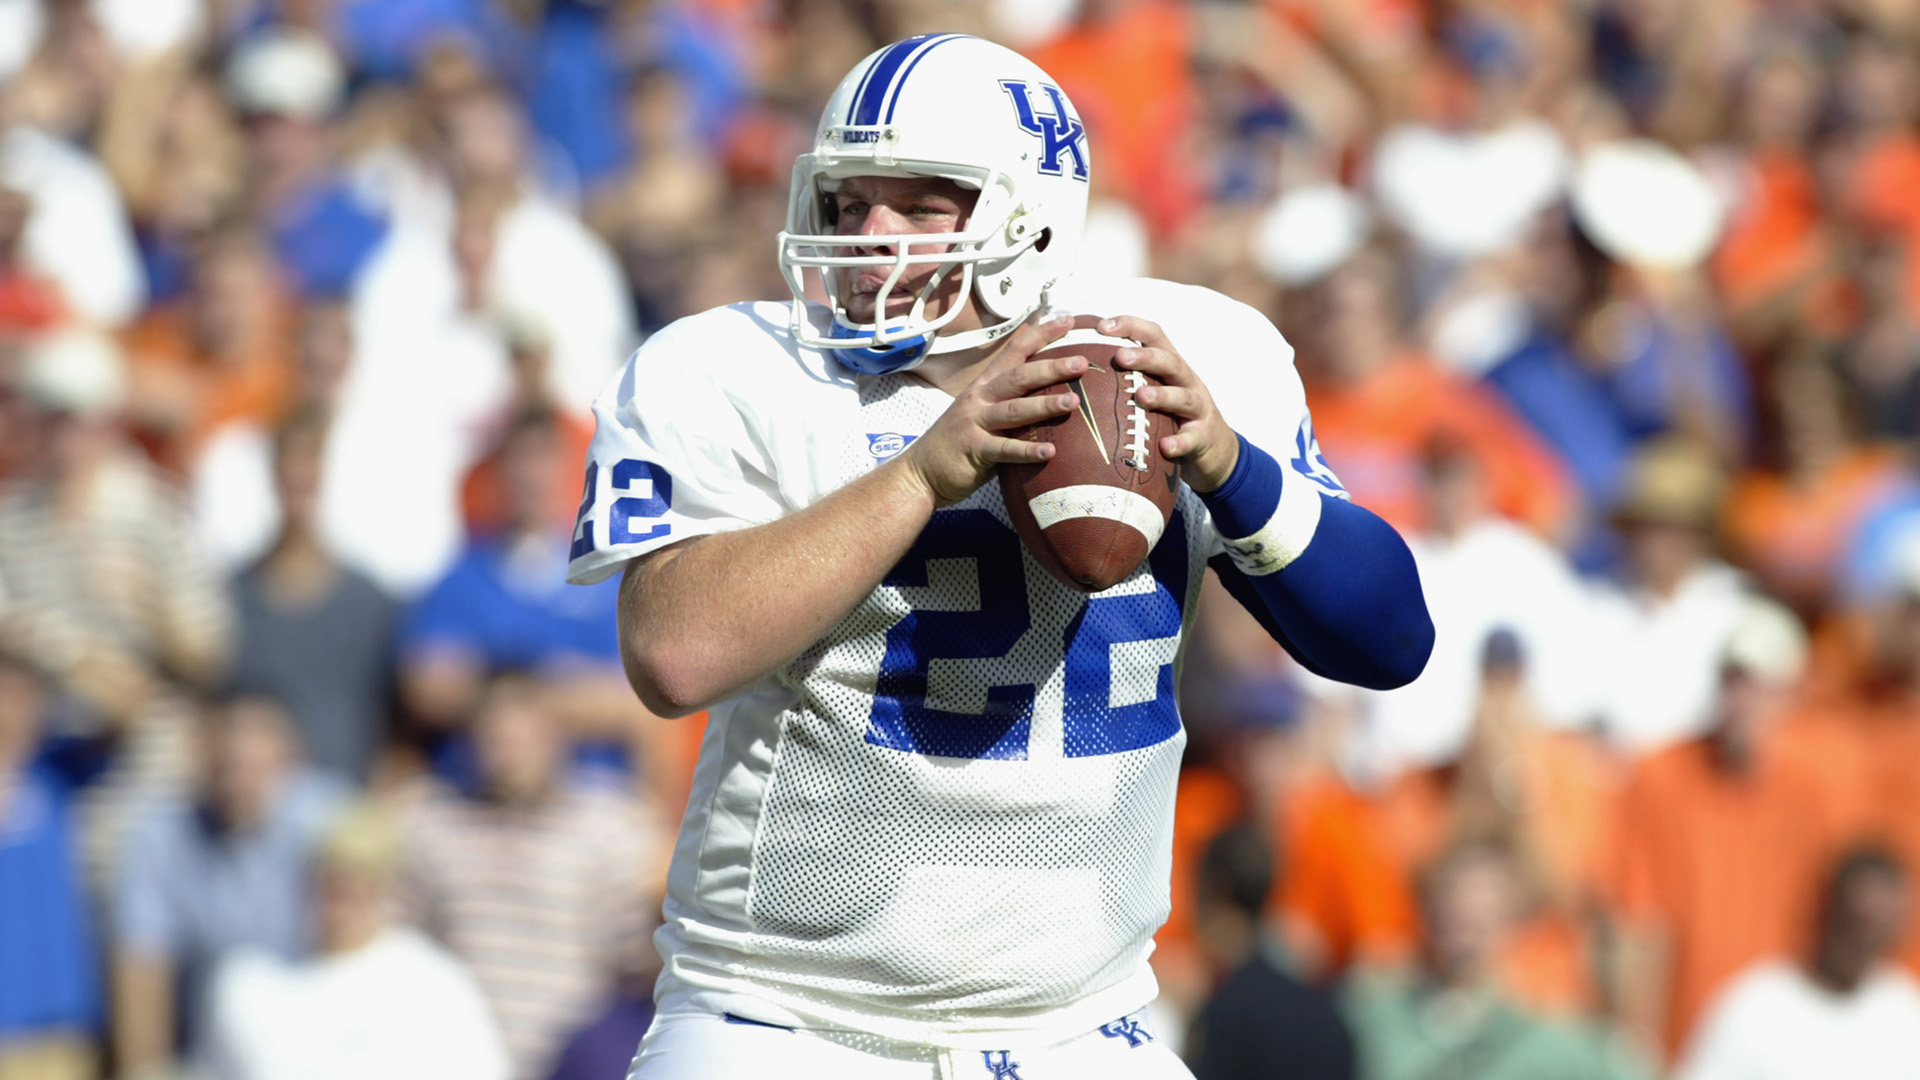 Former NFL, Kentucky QB Jared Lorenzen getting fit after topping 500 pounds